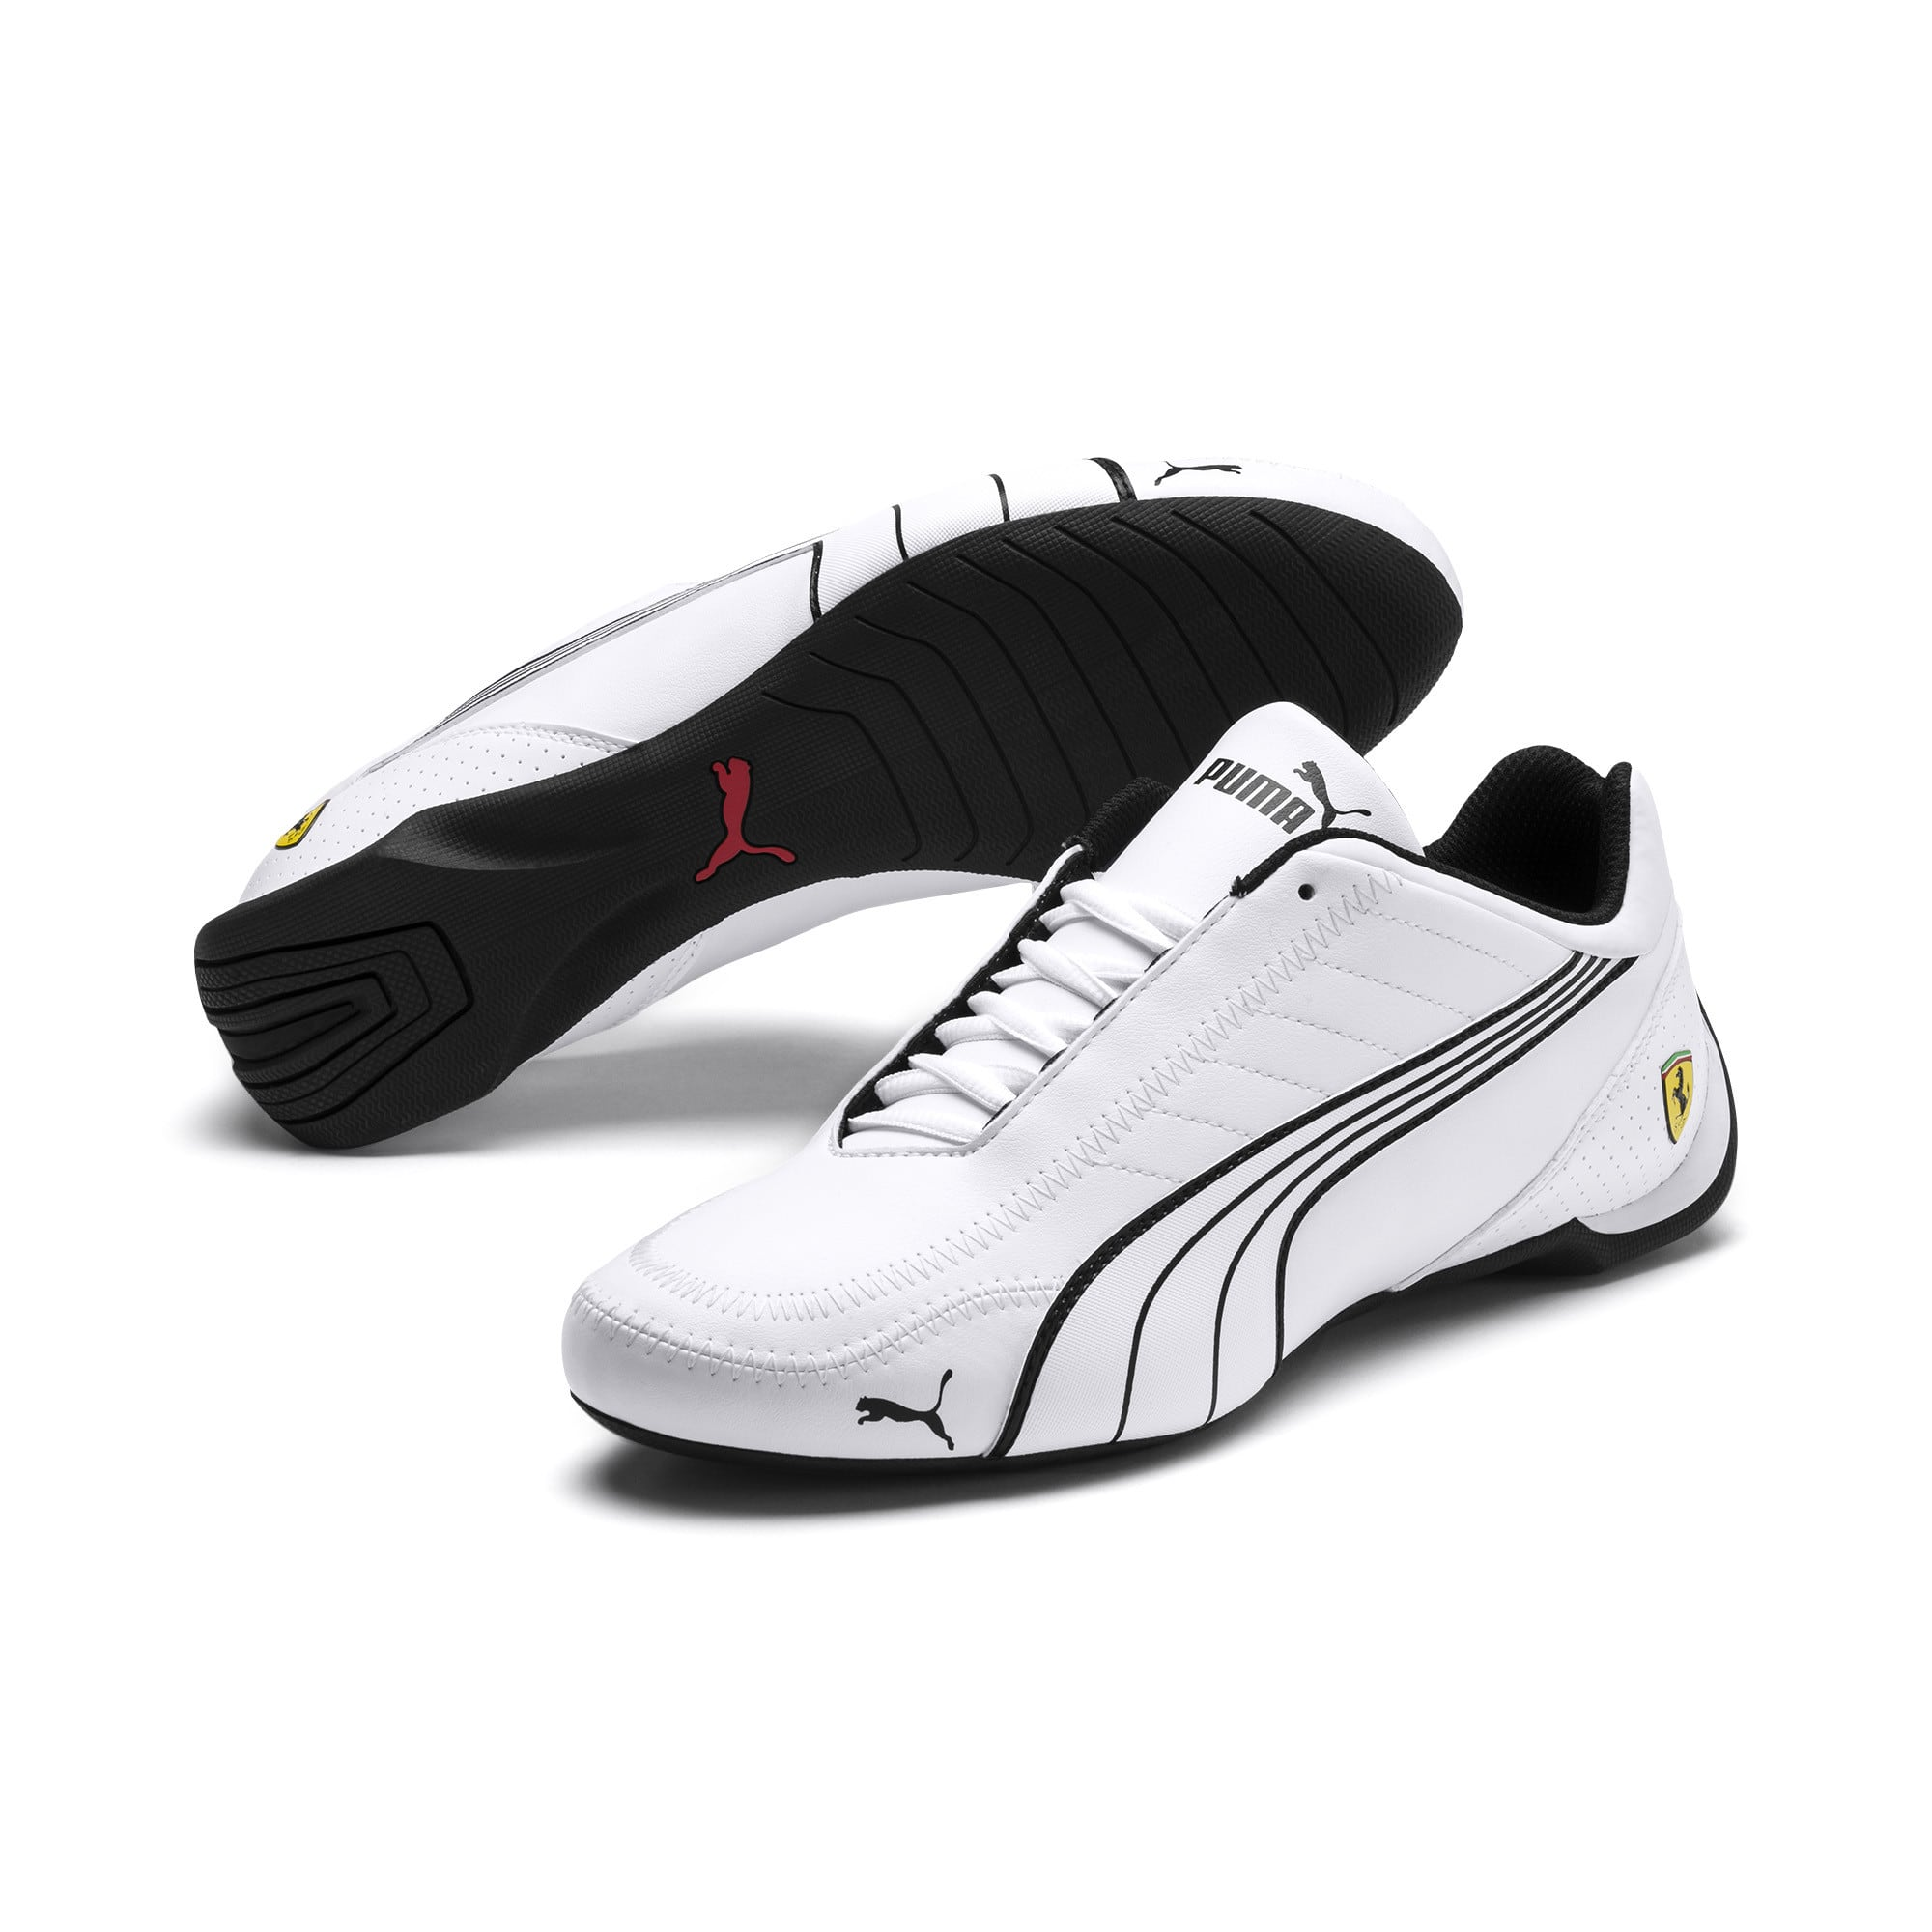 999432f67f1 PUMA Men's Ferrari Future Kart Cat Motorsport Shoes (White ...